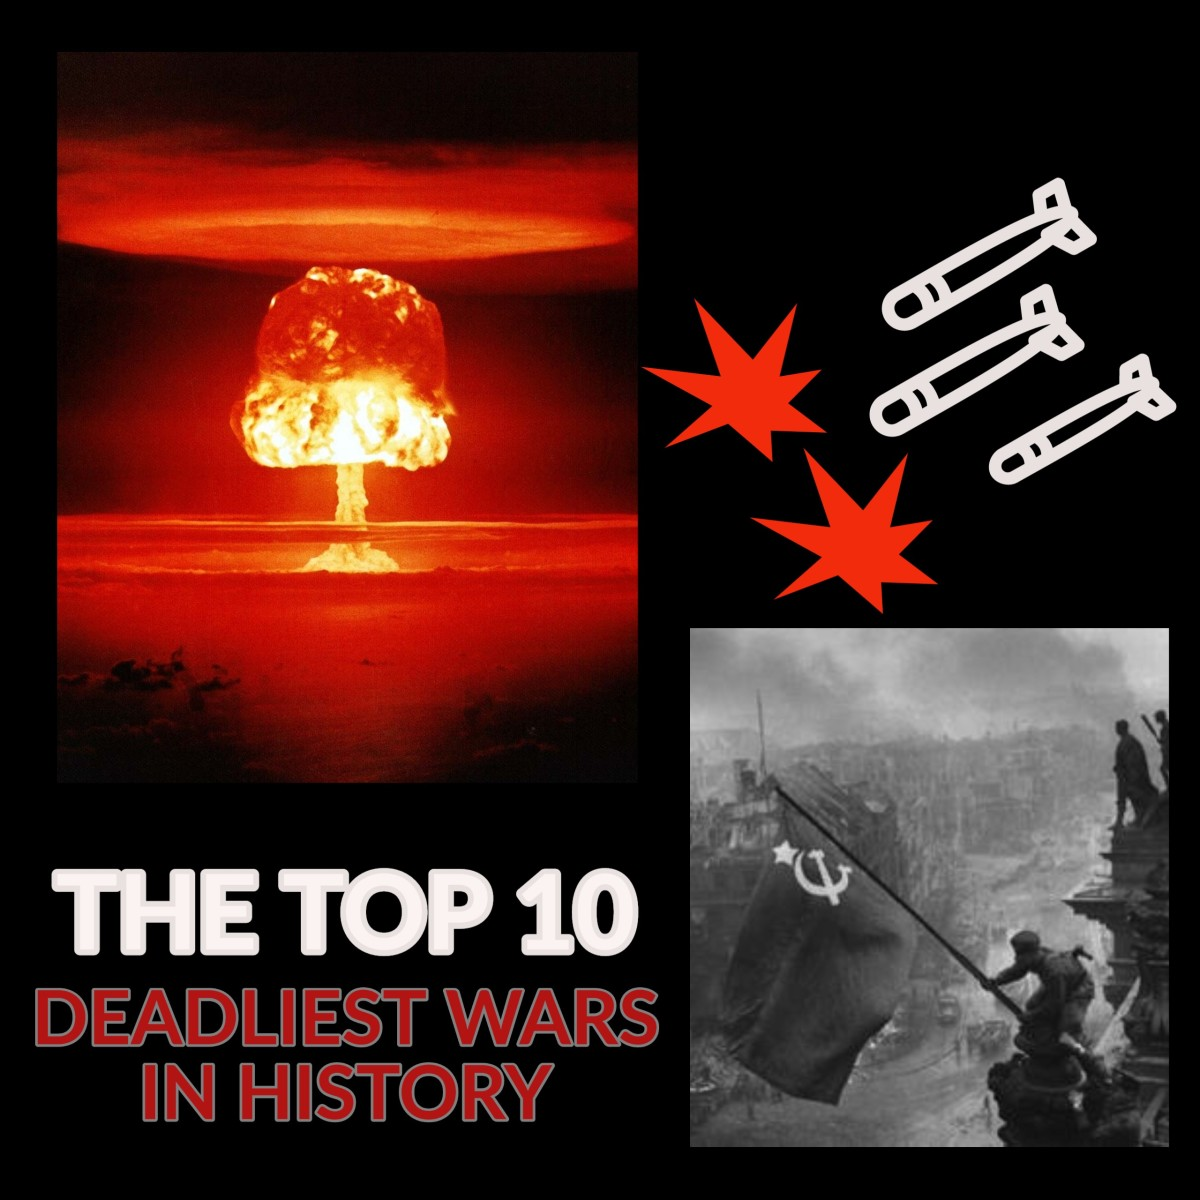 From the Second World War to the An Lushan Rebellion, this article ranks the 10 worst conflicts in history.